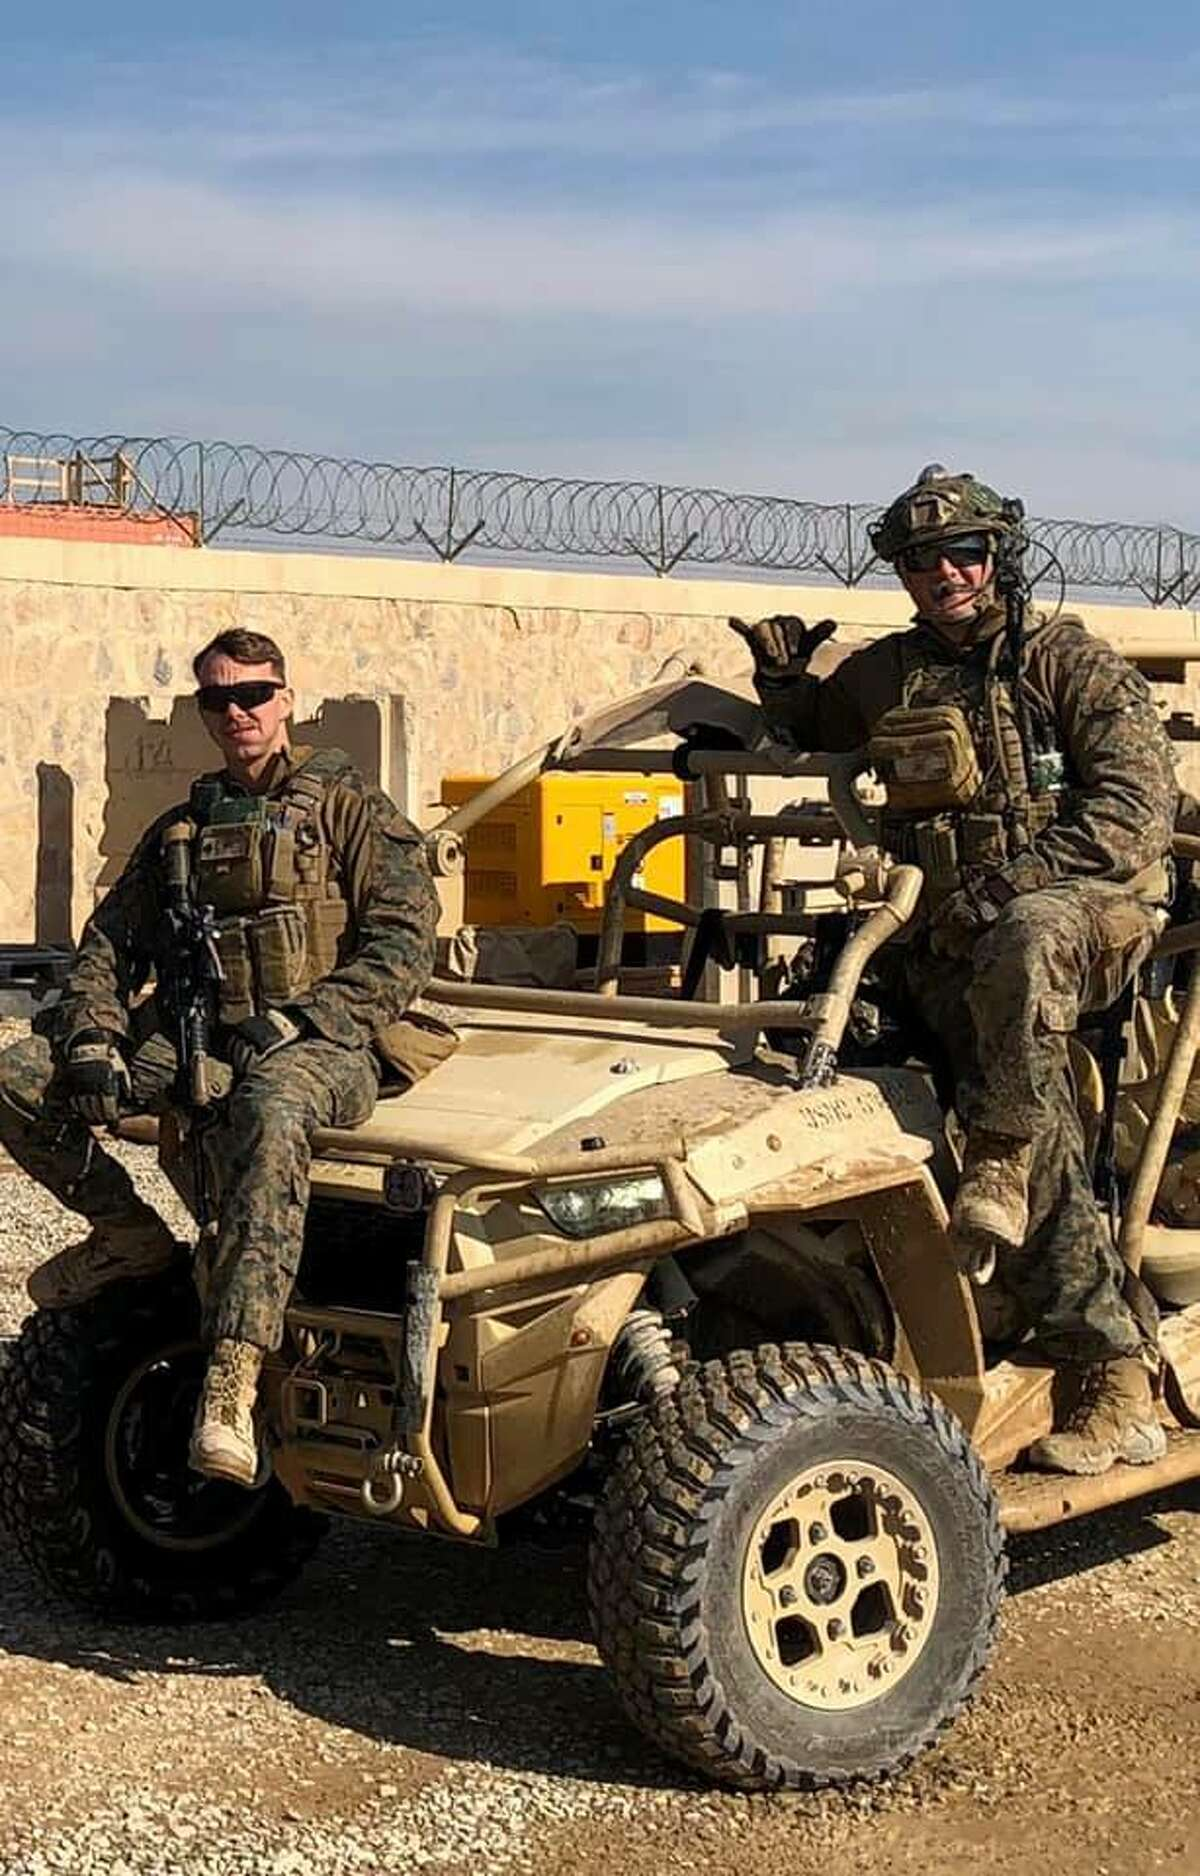 Marine Sgt. Dan Wargo is ready for a mission in the Afghanistan war.